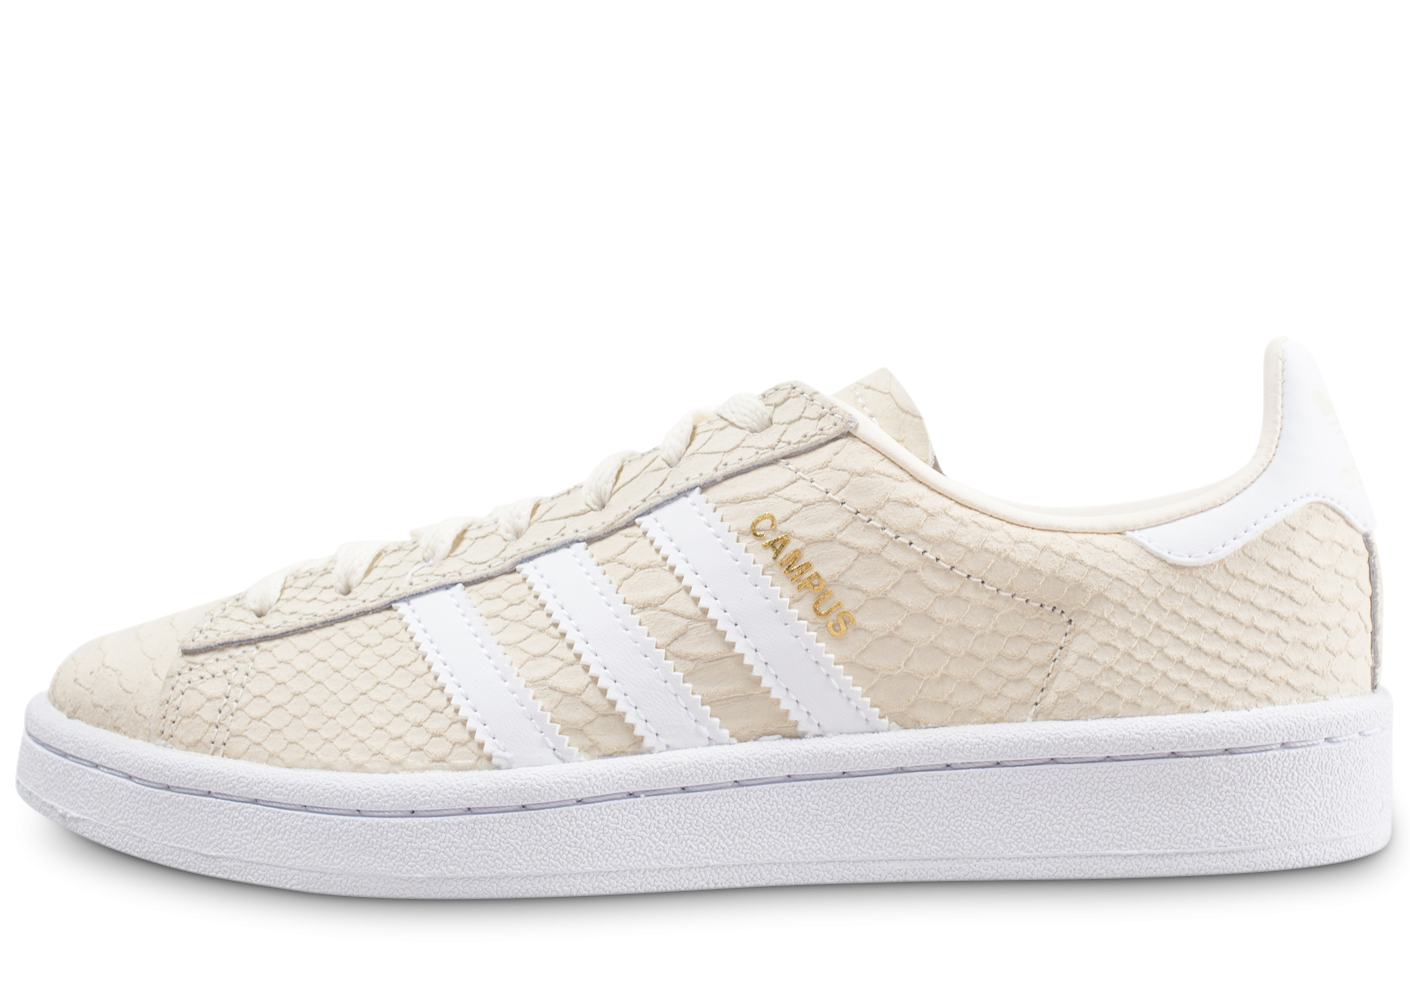 huge selection of 42226 c0a62 adidas Campus écaillé jaune - Chaussures adidas - Chausport